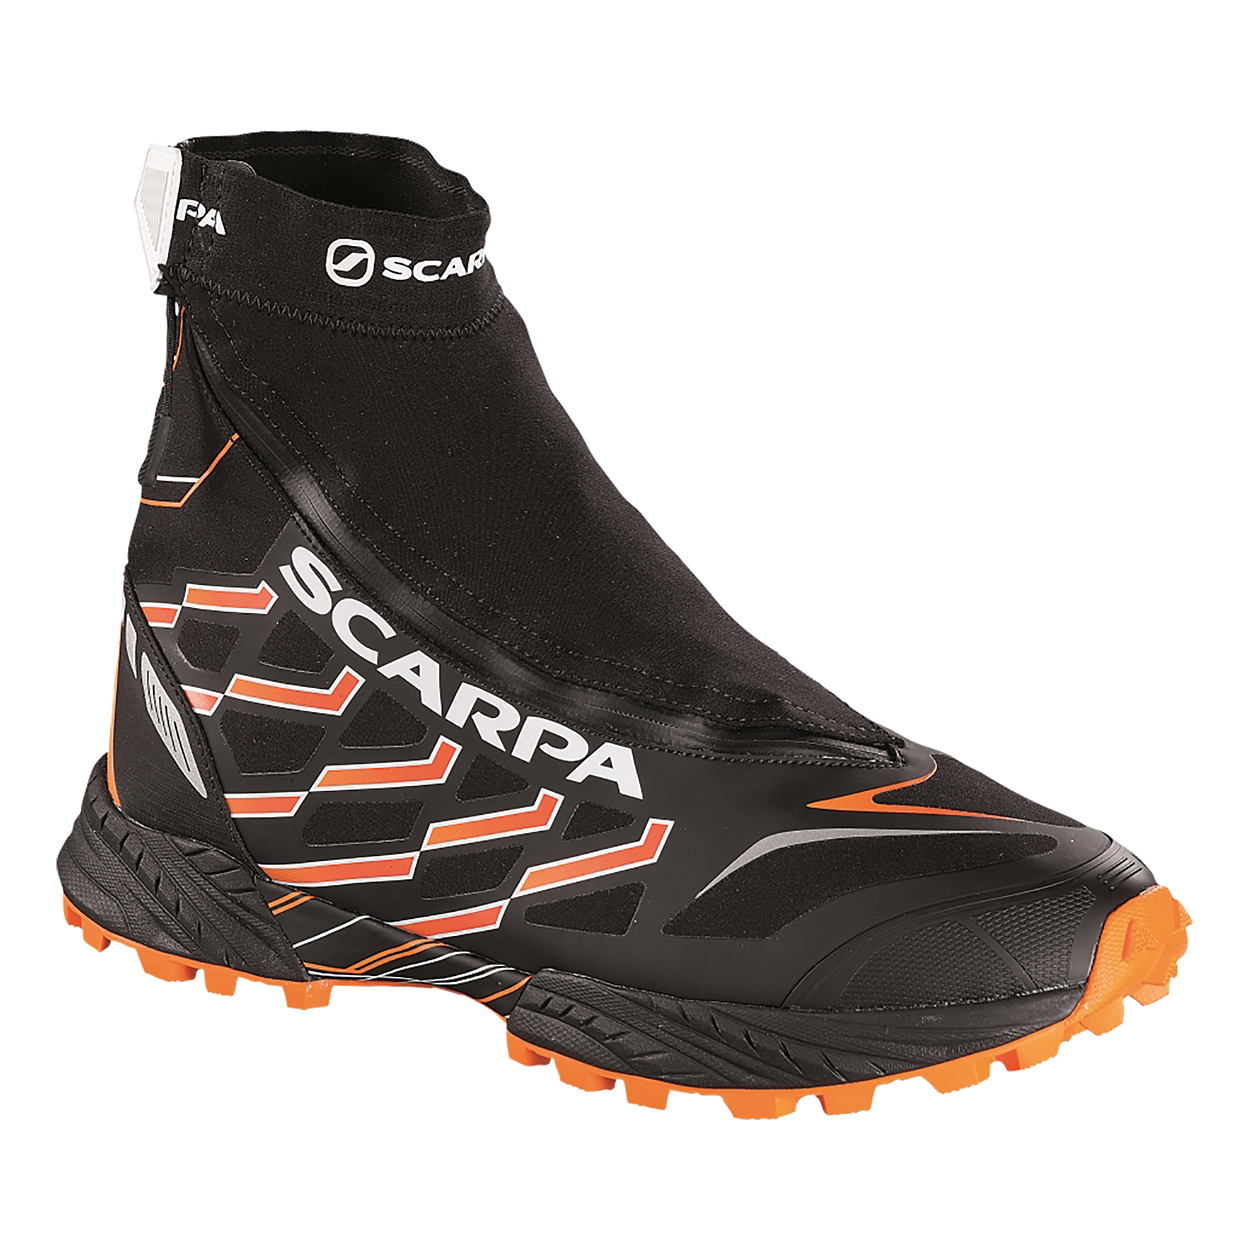 photo: Scarpa Neutron G